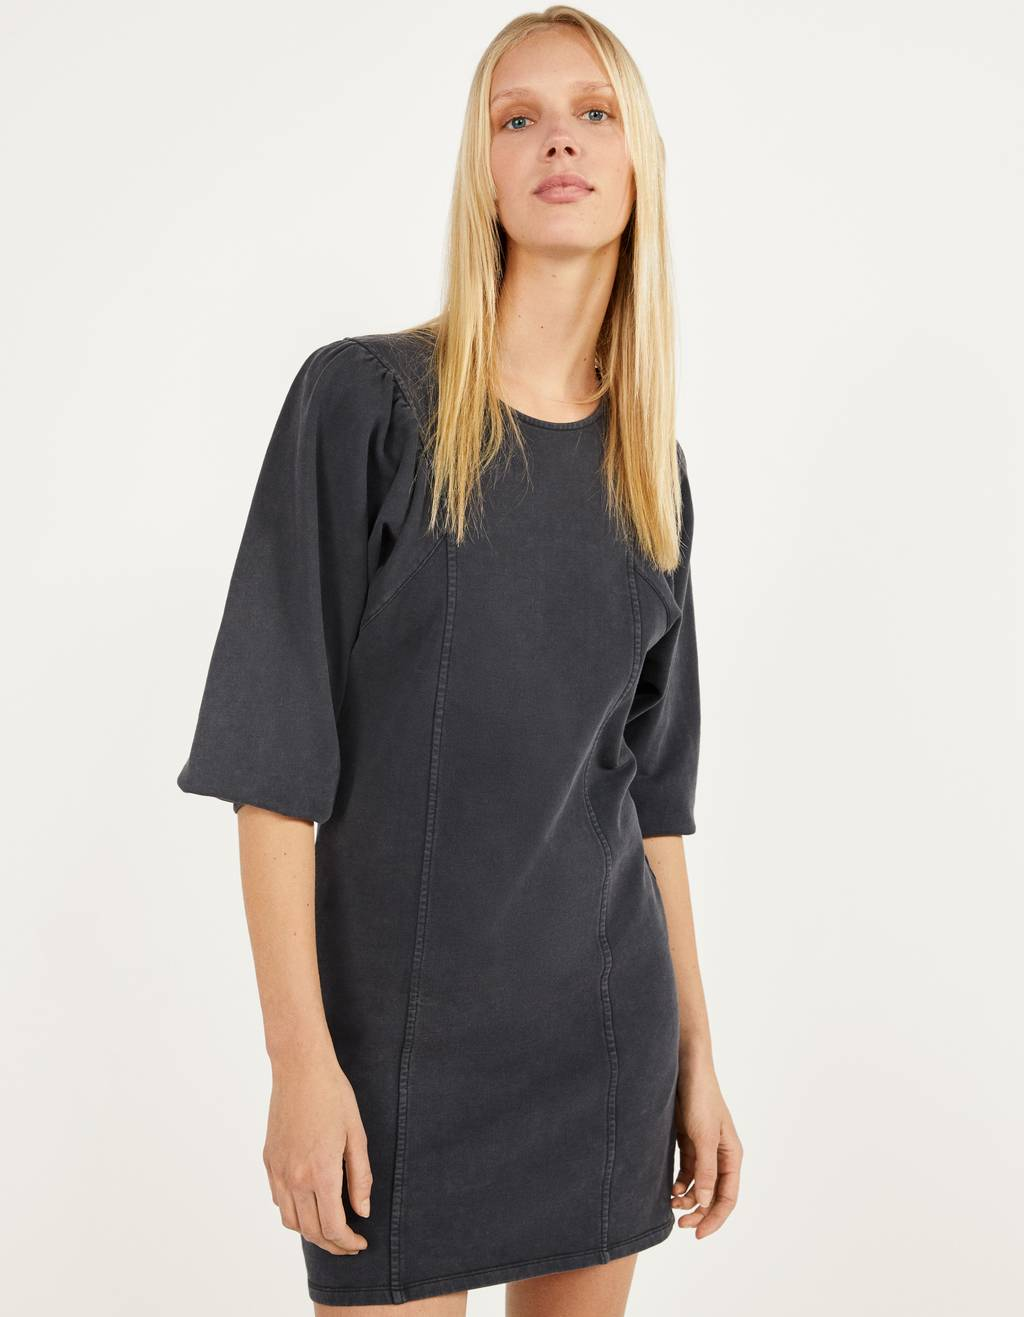 Sweatshirt material dress with bishop sleeves